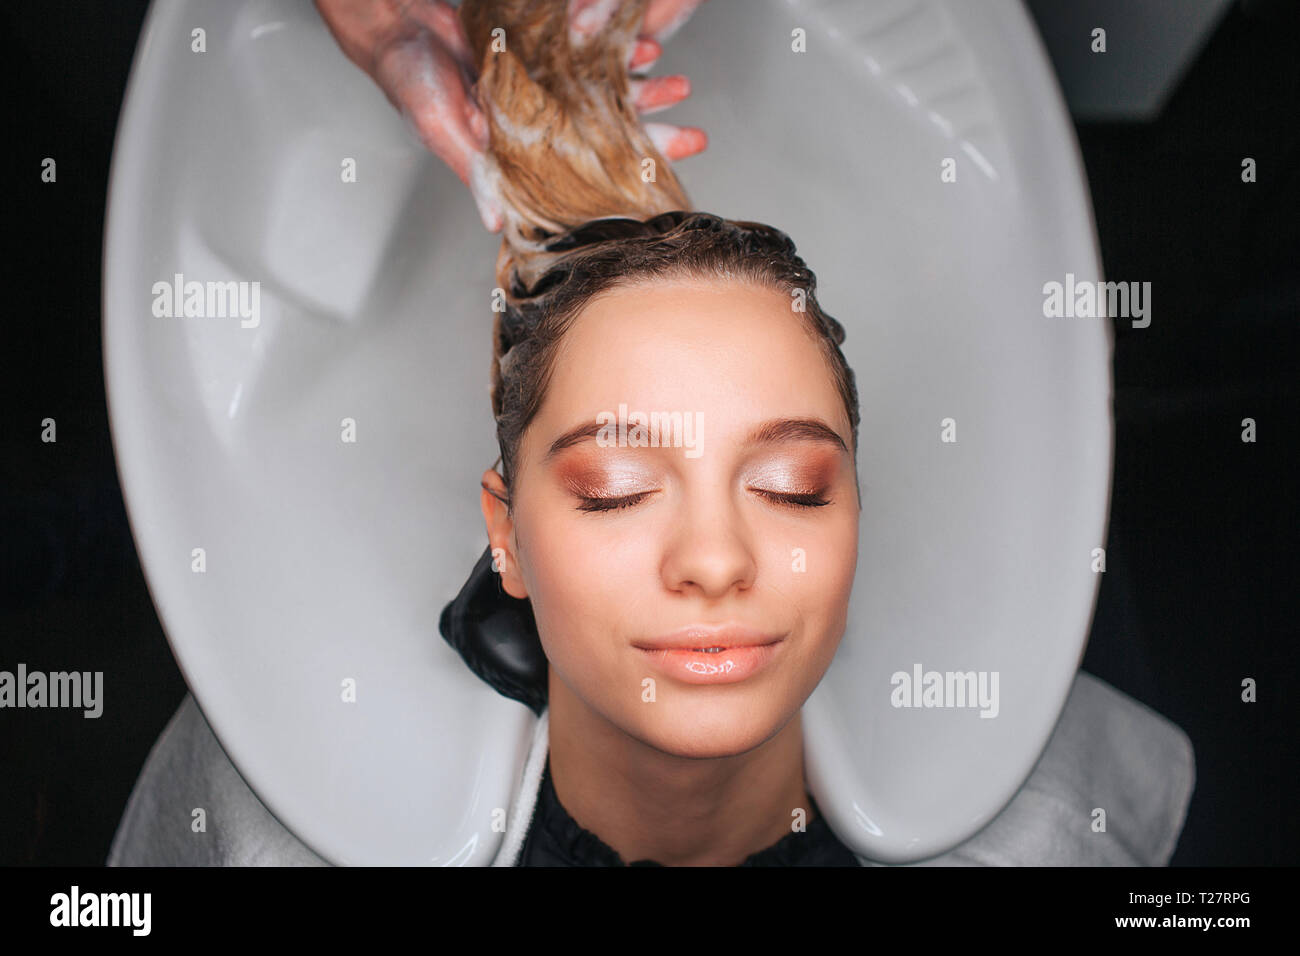 Top view of beautiful young woman with closed eyes smiling while hairdresser washing blonde hair. Hair care in salon - Stock Image